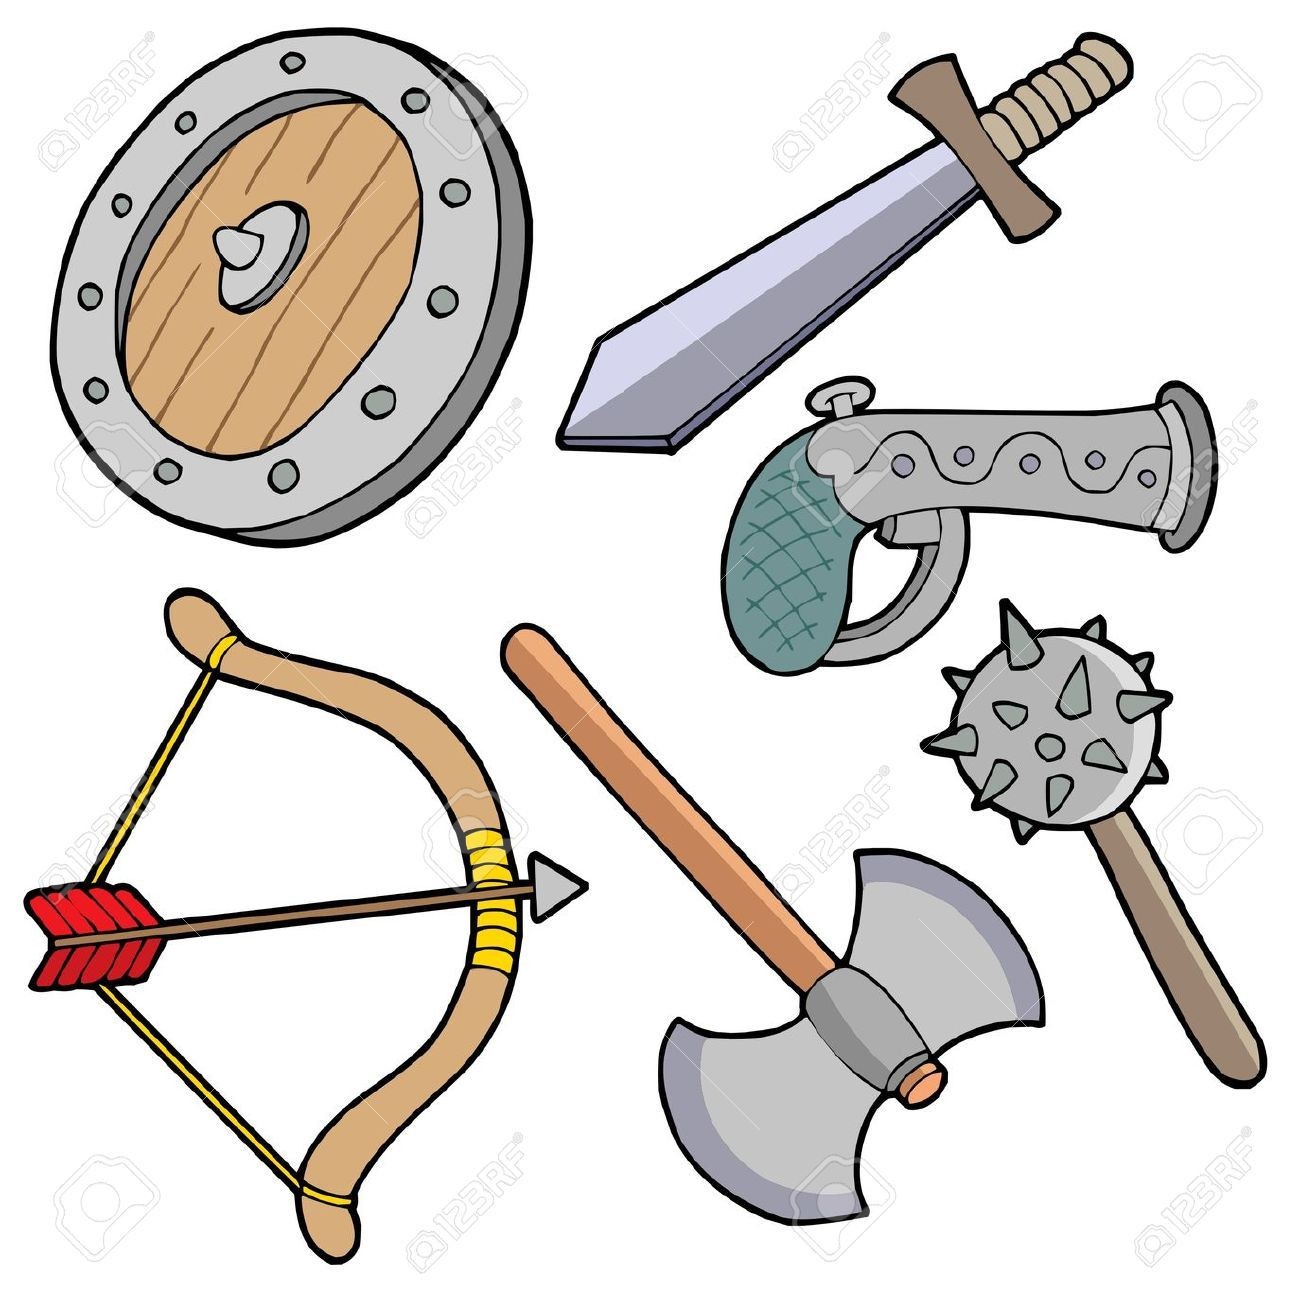 1300x1292 3912979 Weapons Collection Vector Illustration Stock Vector